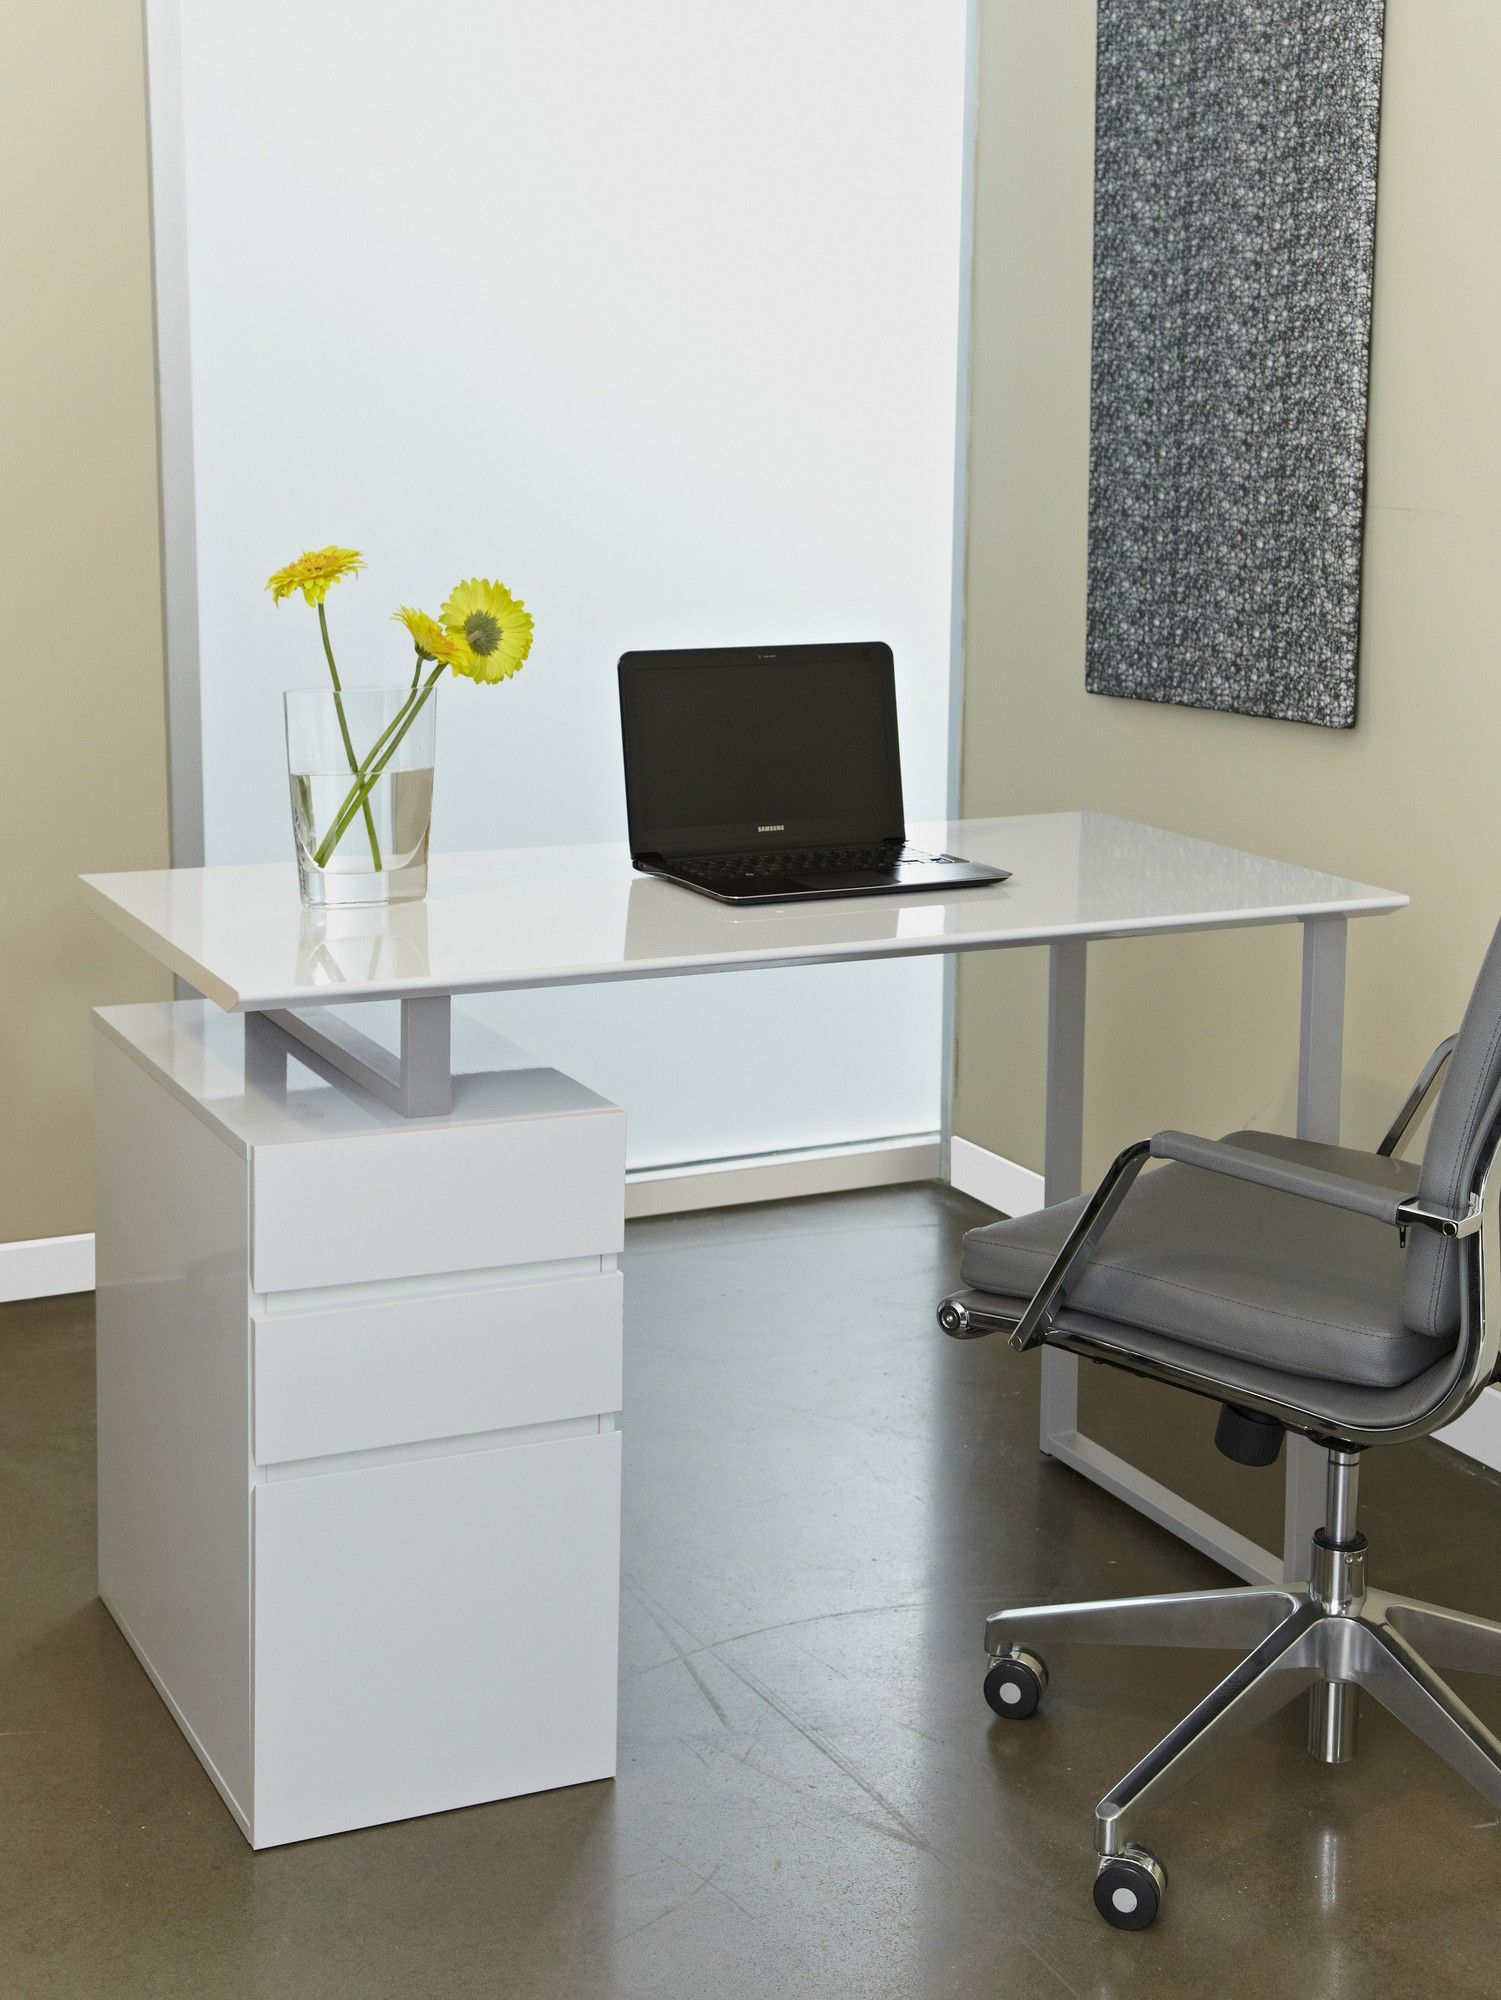 Jesper office tribeca study desk allmodern study desk pinterest desks office furniture - Jesper office desk ...